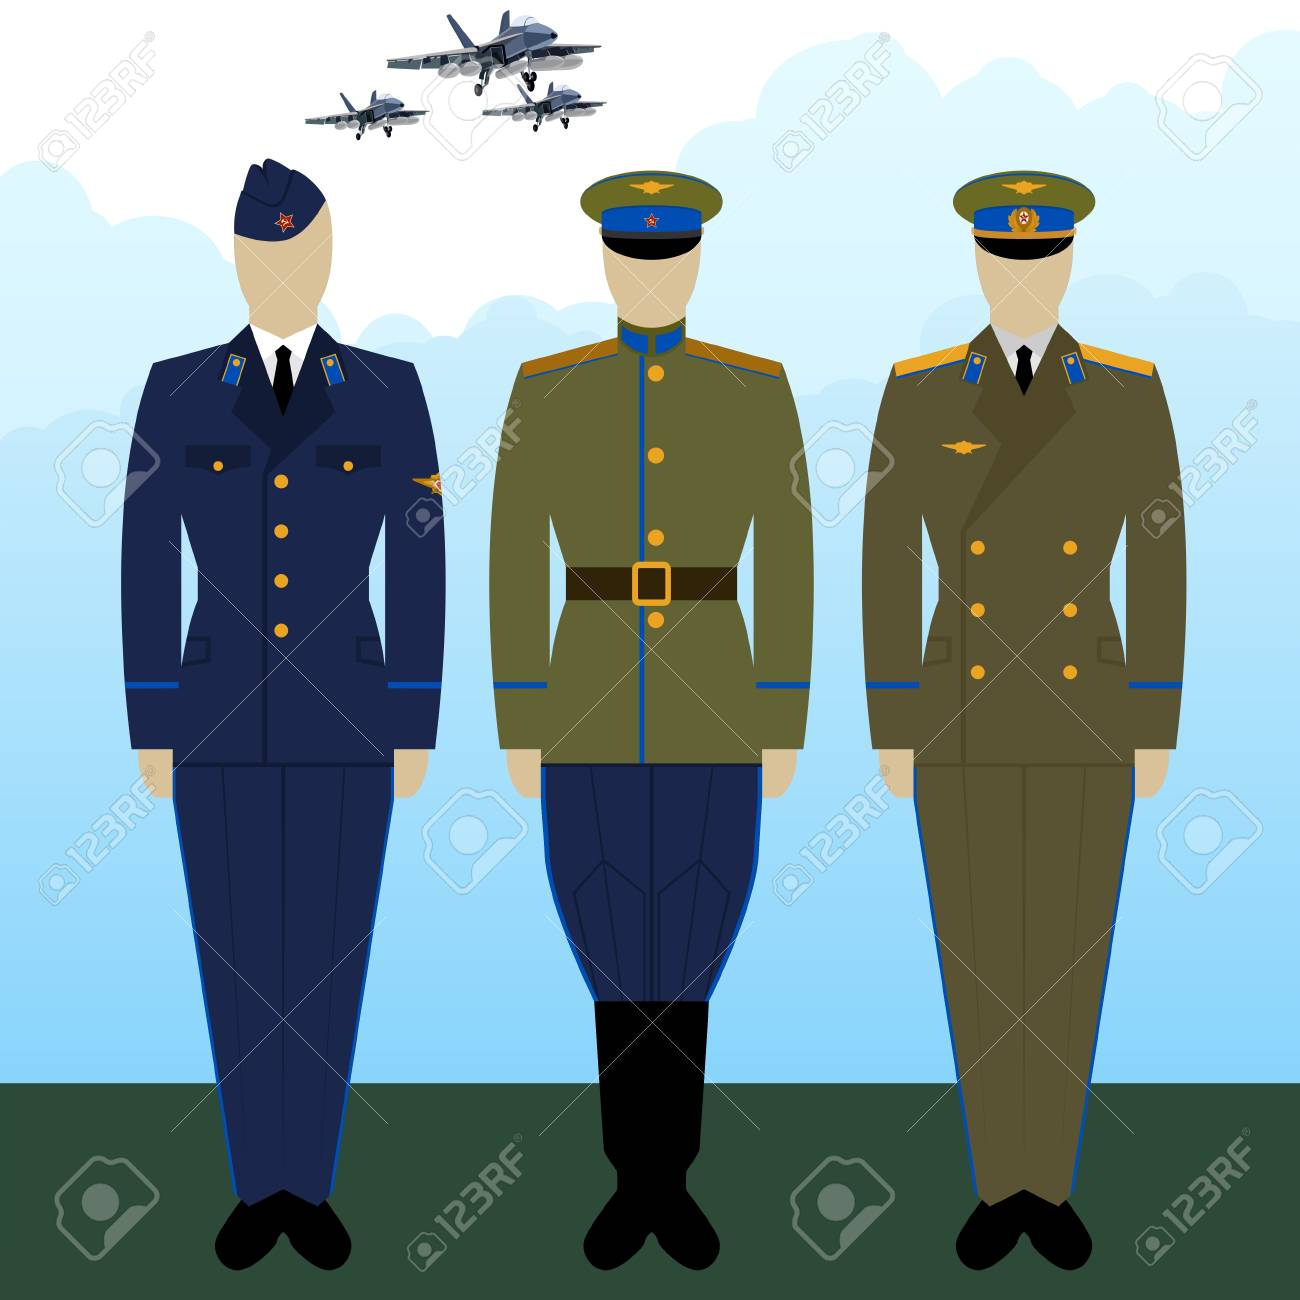 7038529d4d8 Russian military pilots in uniform against the background of military  aircraft. Stock Vector - 74228168